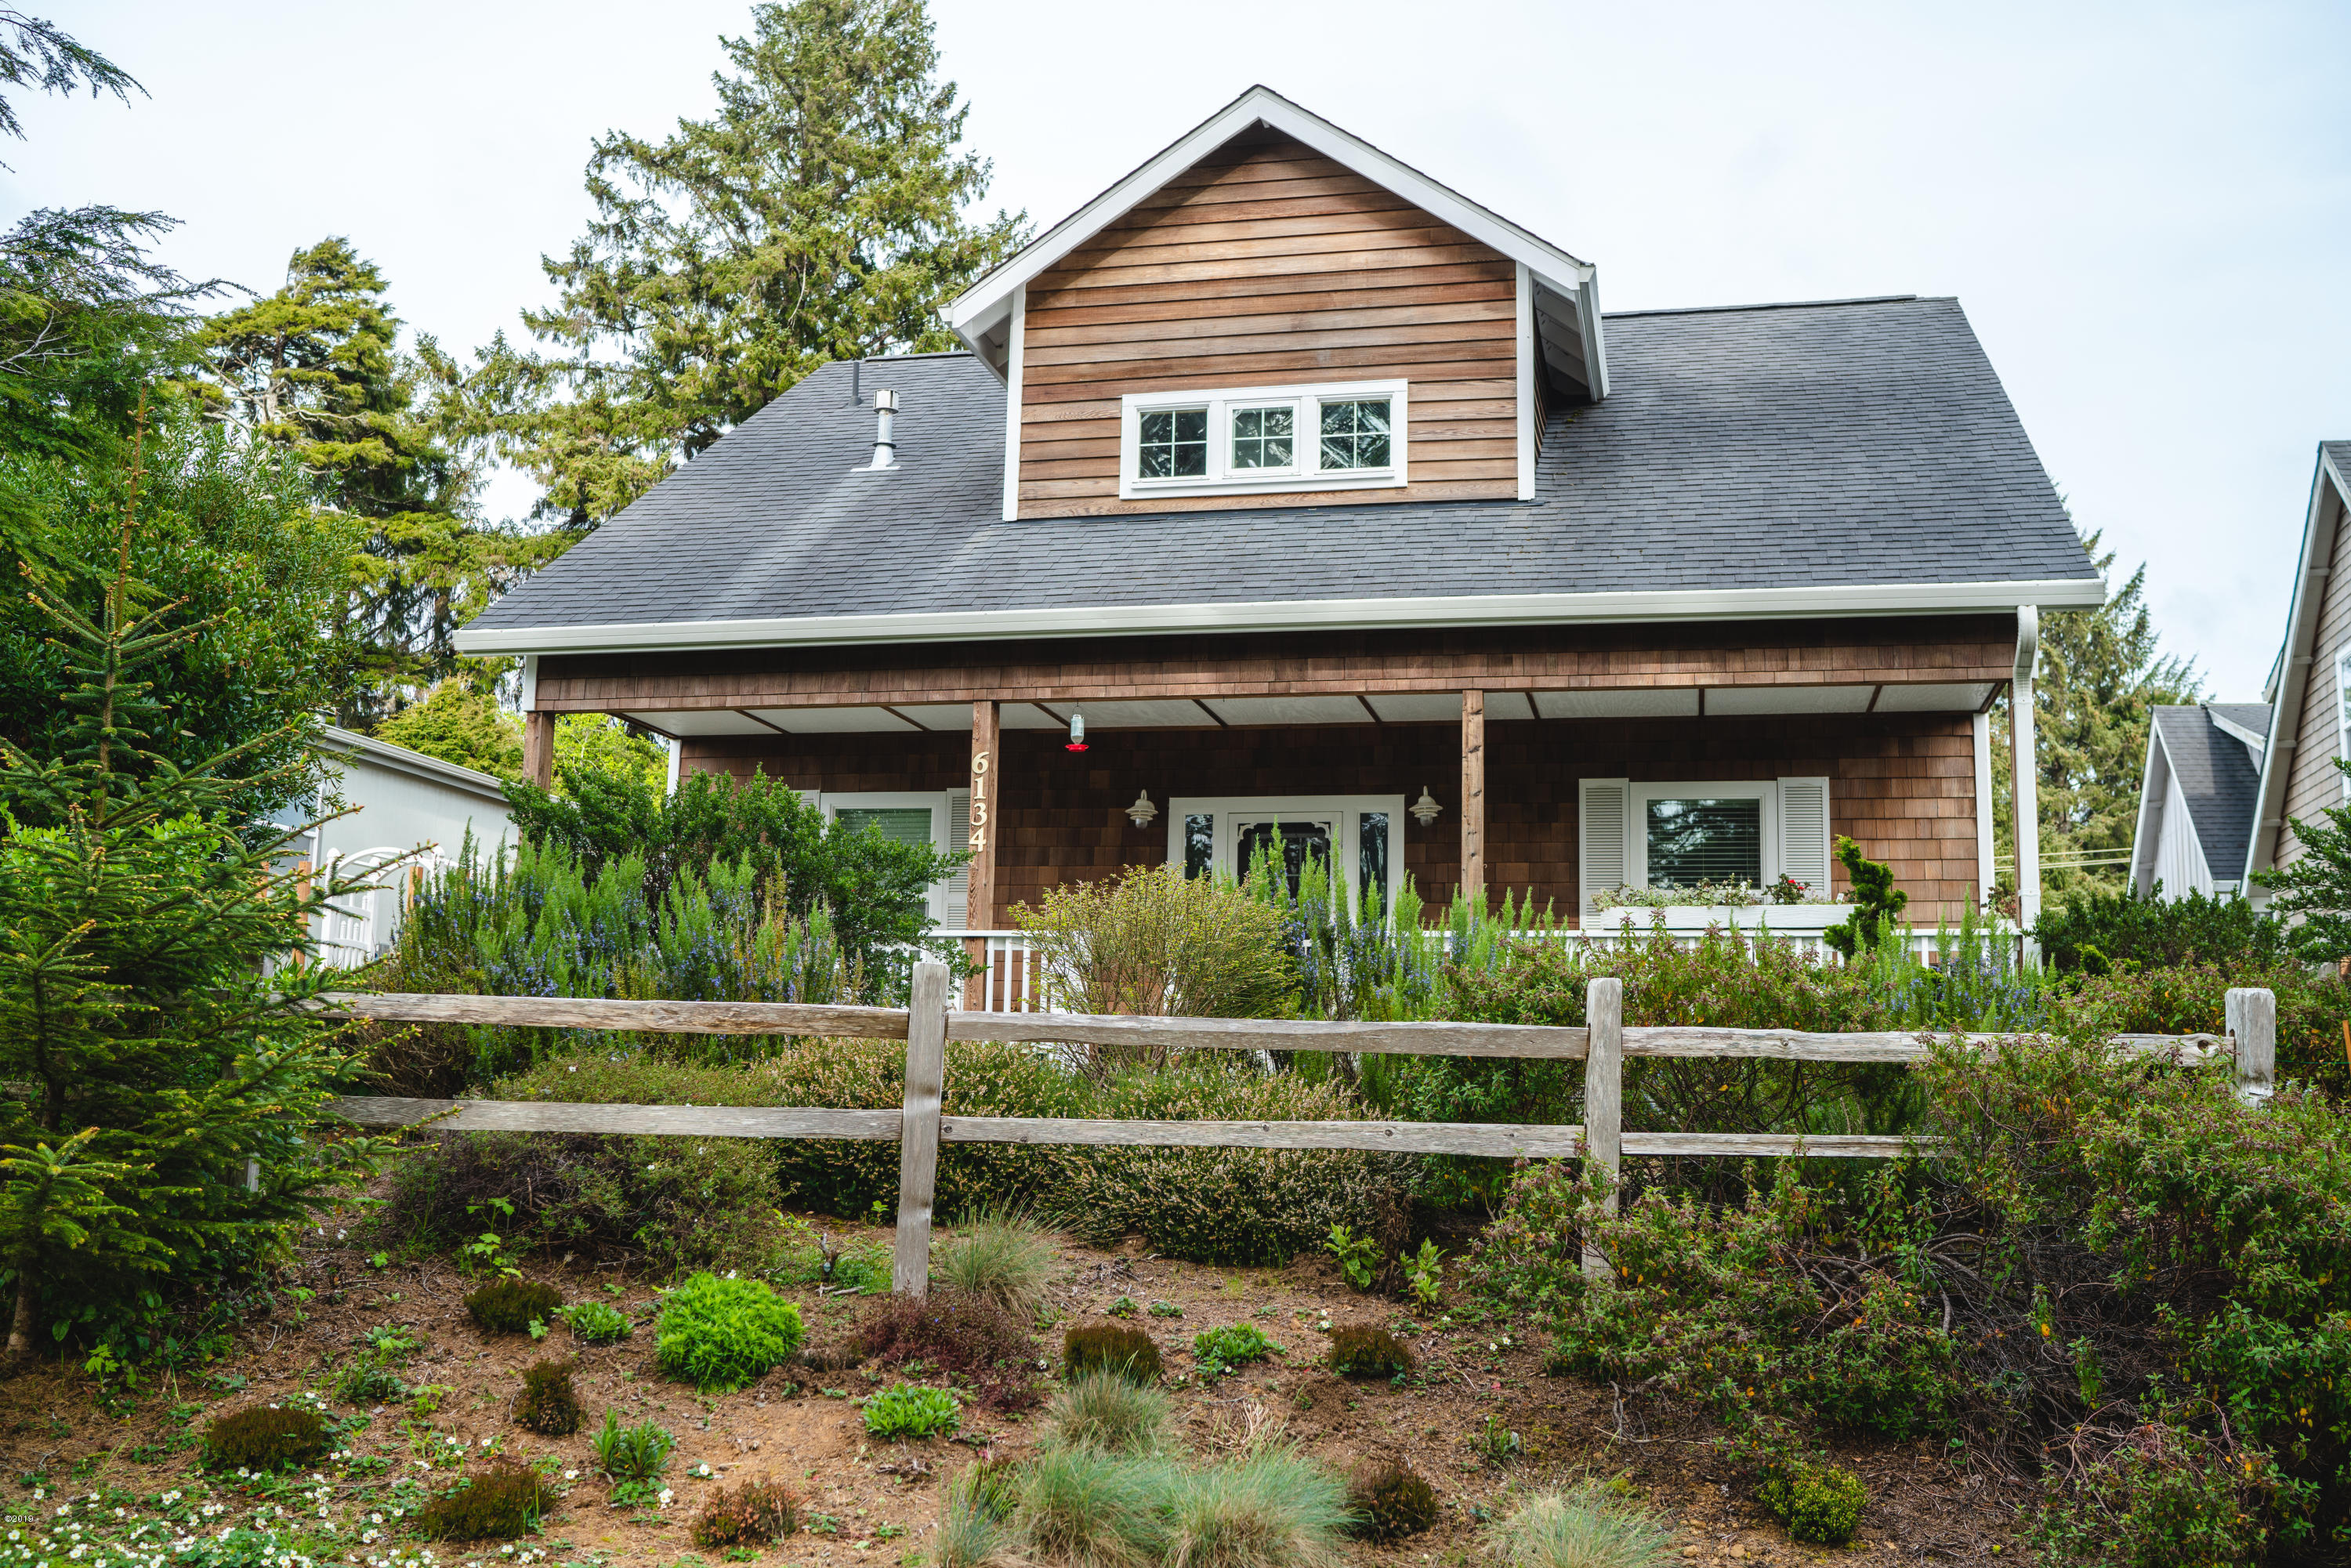 6134 Spruce Ave, Gleneden Beach, OR 97388 - Street view